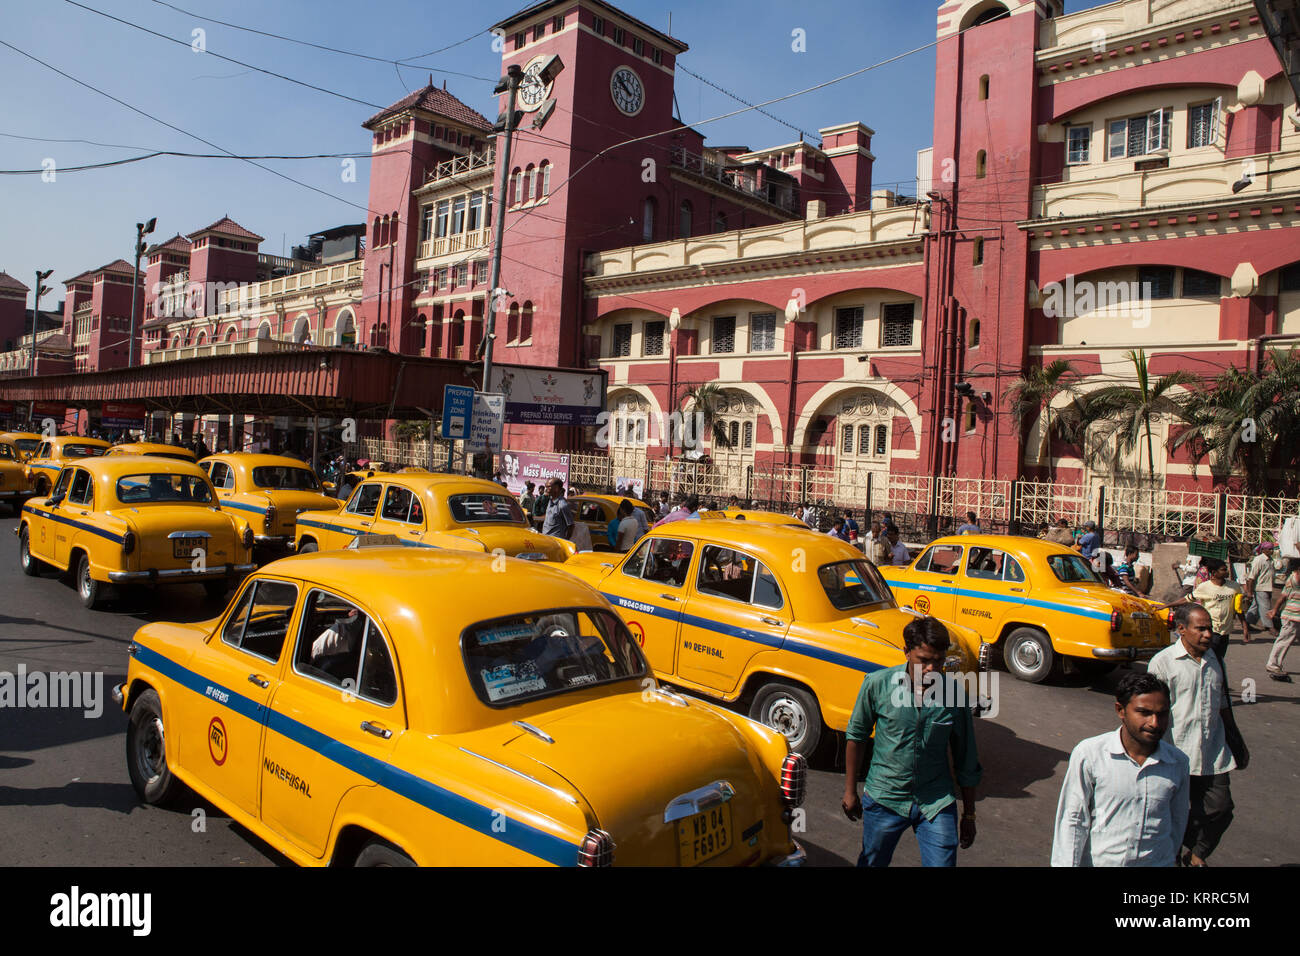 Taxis in front of Howrah Railway Station in Kolkata, India - Stock Image